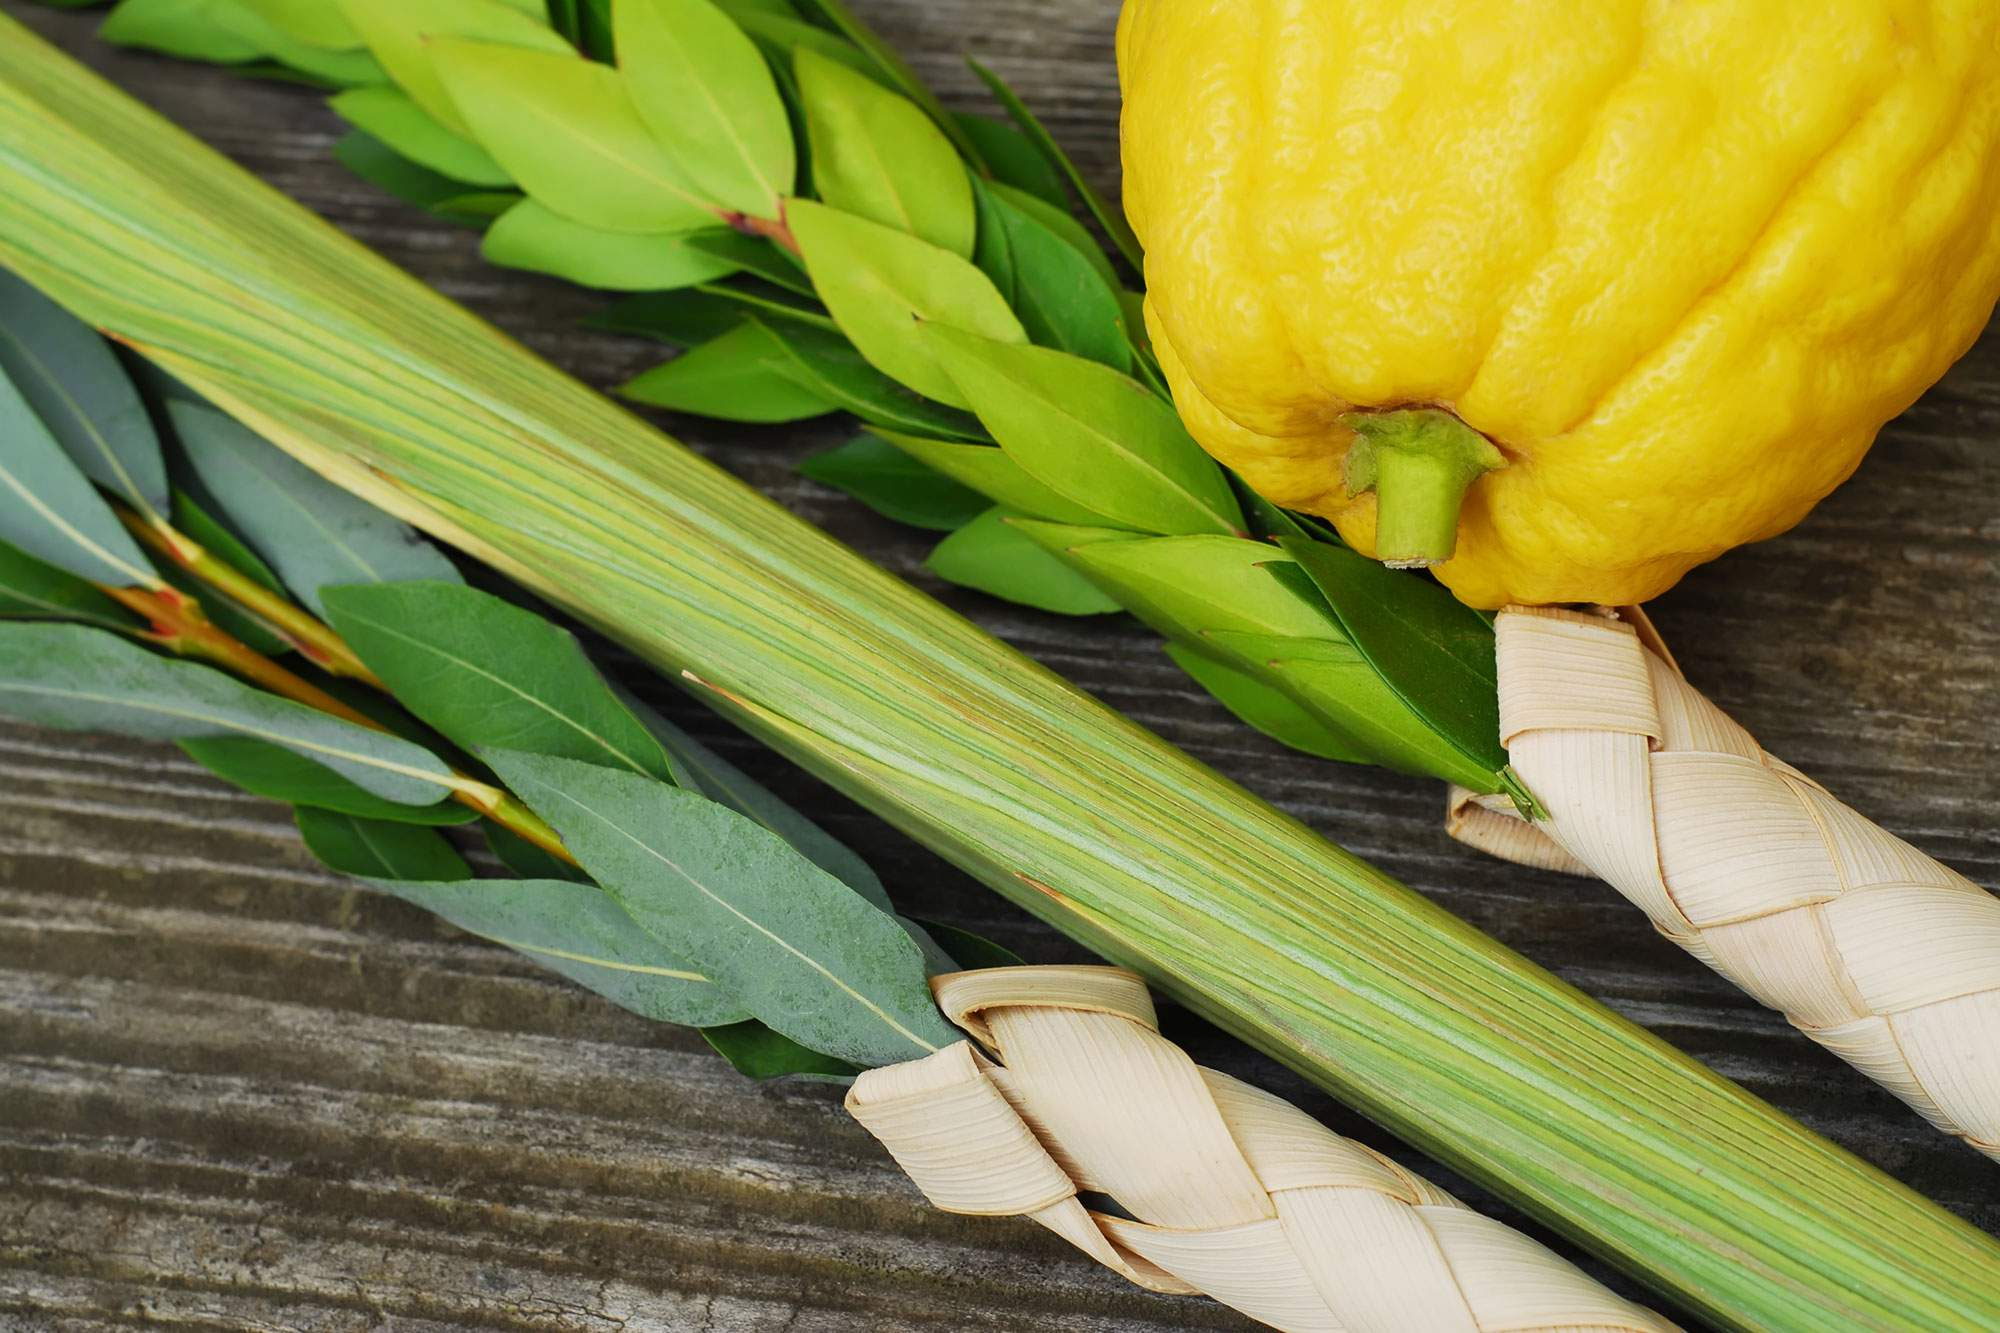 Order a Lulav and Etrog for Sukkot